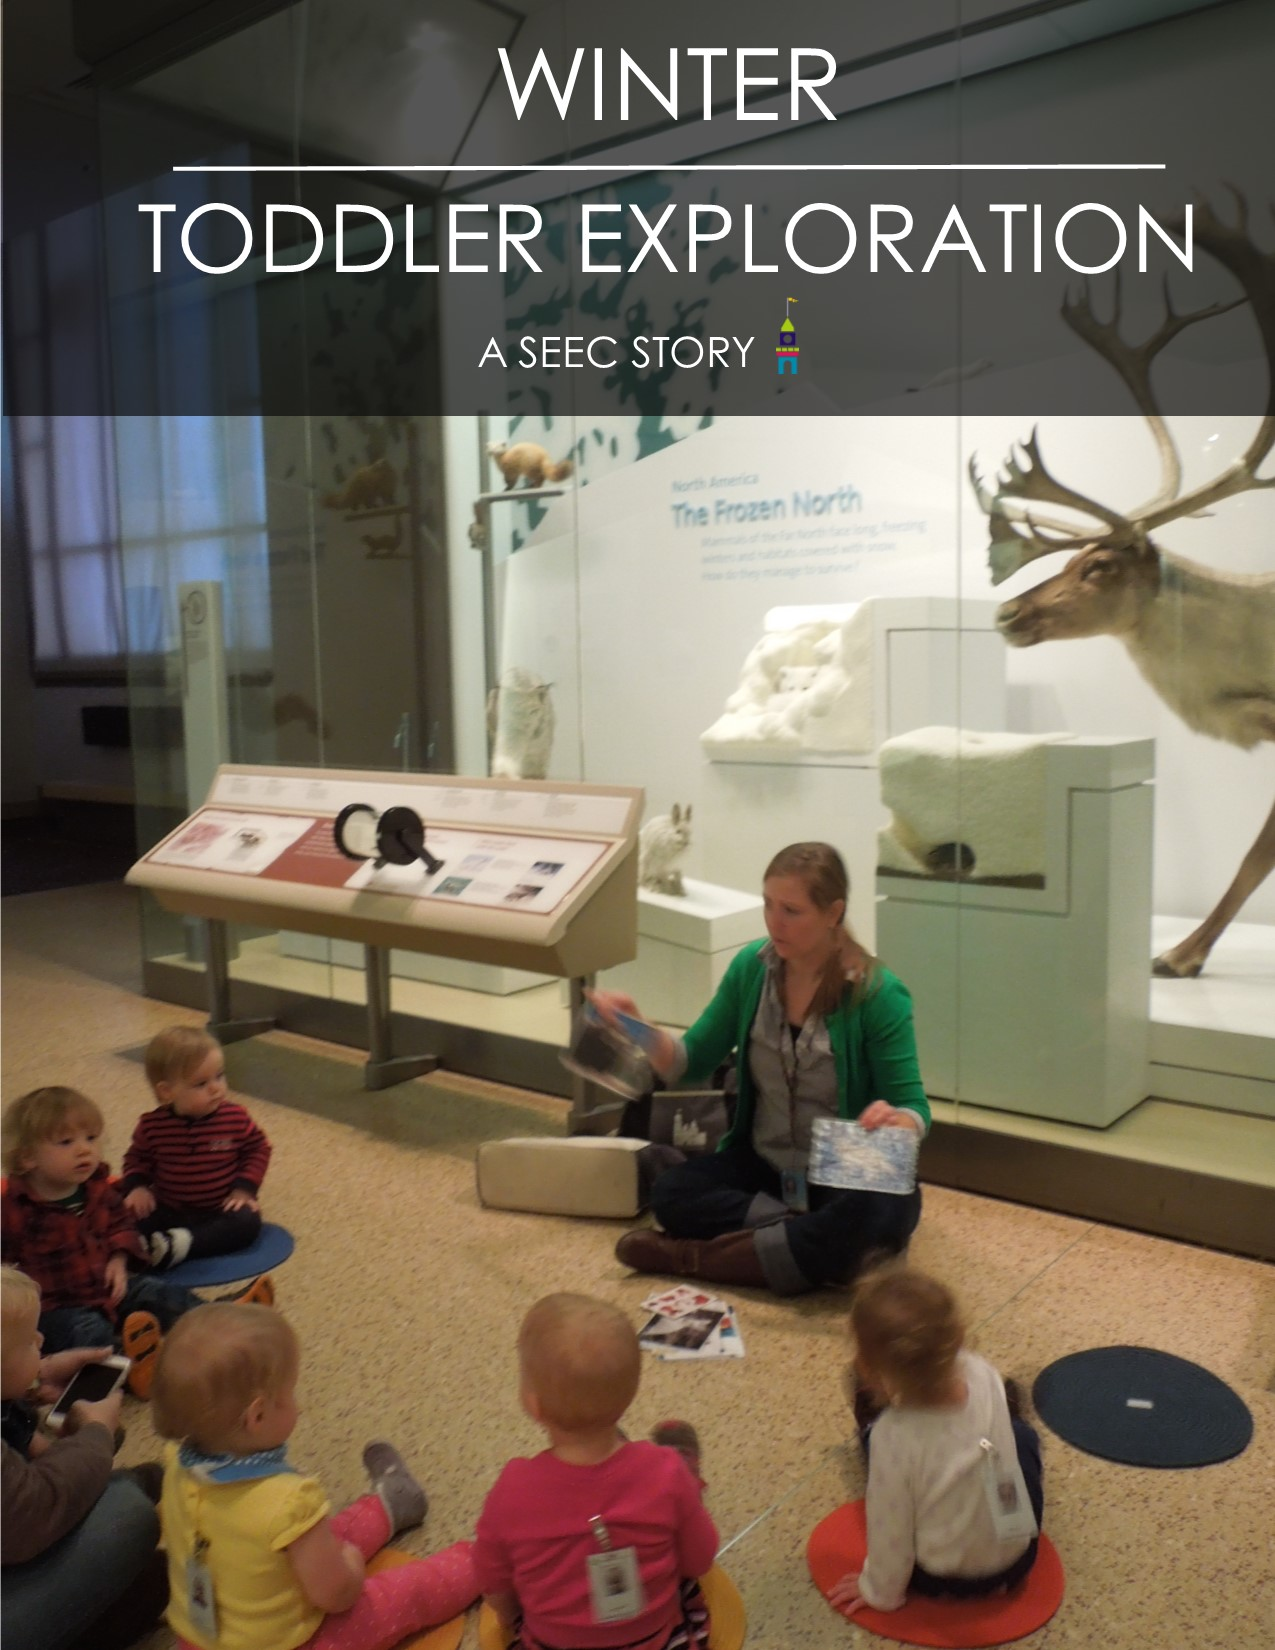 Graphic reading Winter, Toddler Exploration and showing toddler classroom at Natural History Museum.